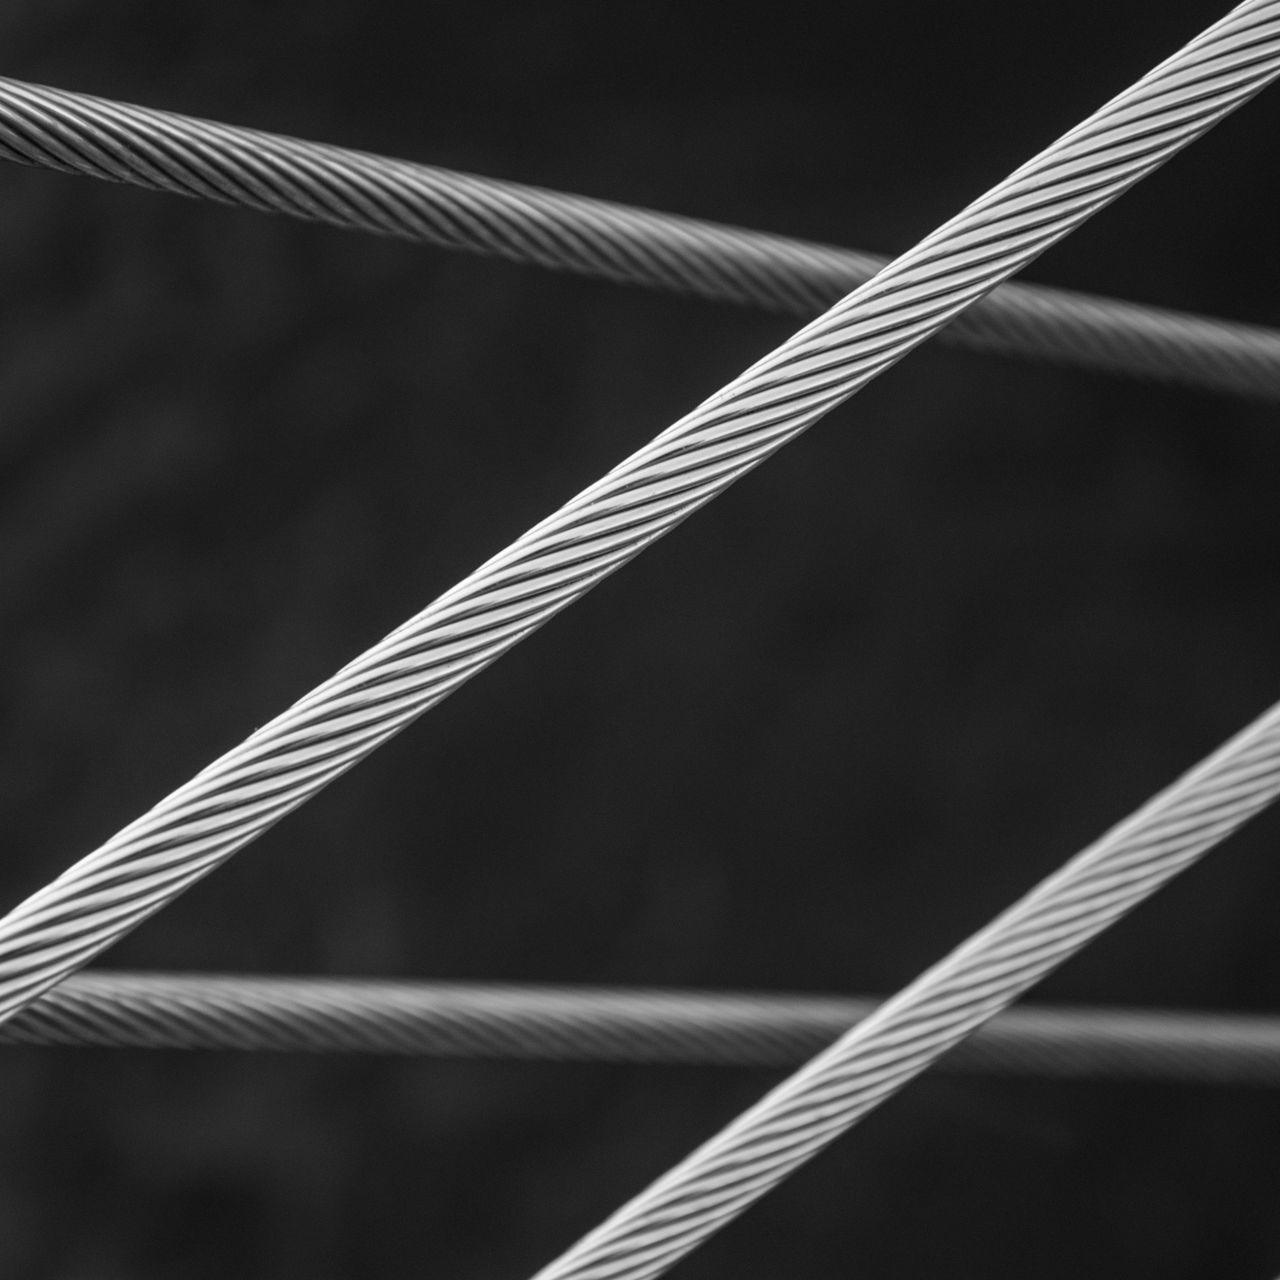 Steely Geometrics Abstract Black And White Photography Cables Close-up Day Geometric Shapes Monochrome No People Outdoors Steel Cable Urban Geometry Fine Art Photography Minimalz Welcome To Black Premium Collection